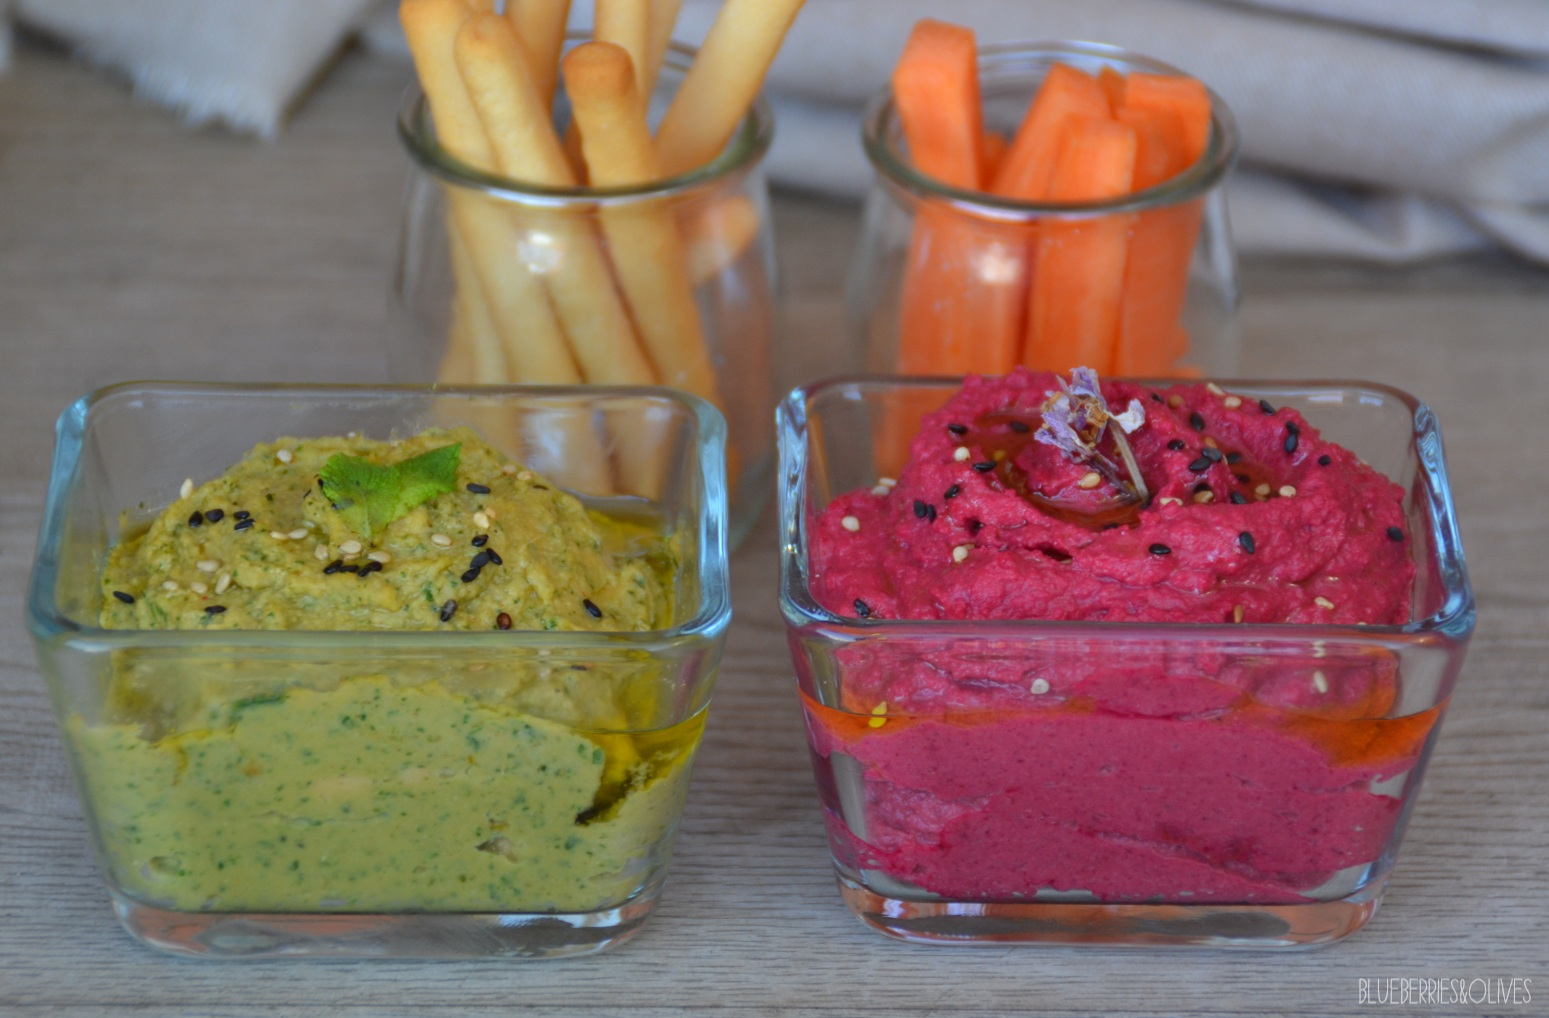 COLOURFUL SPINACH AND BEETROOT HUMMUS